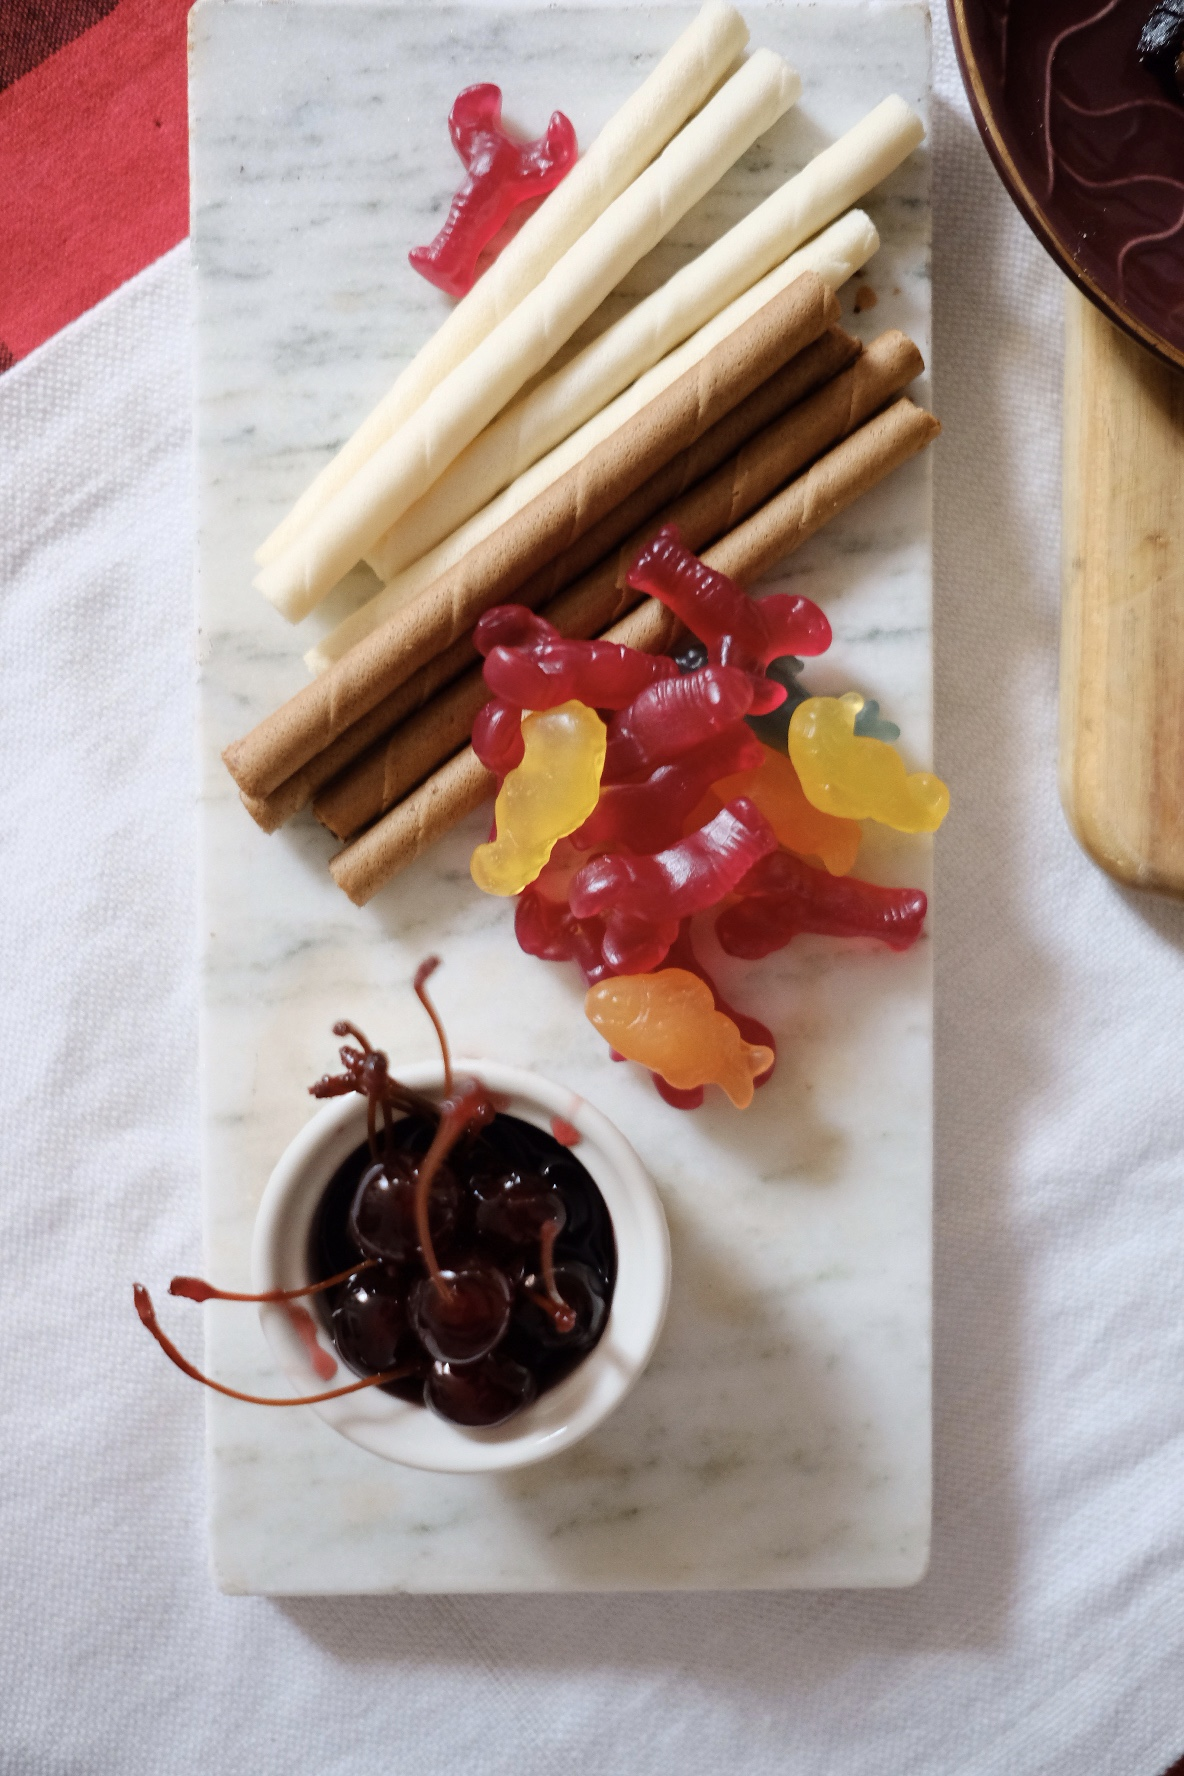 Chocolate and Lace shares her tips on how to build the best Charcuterie Board.